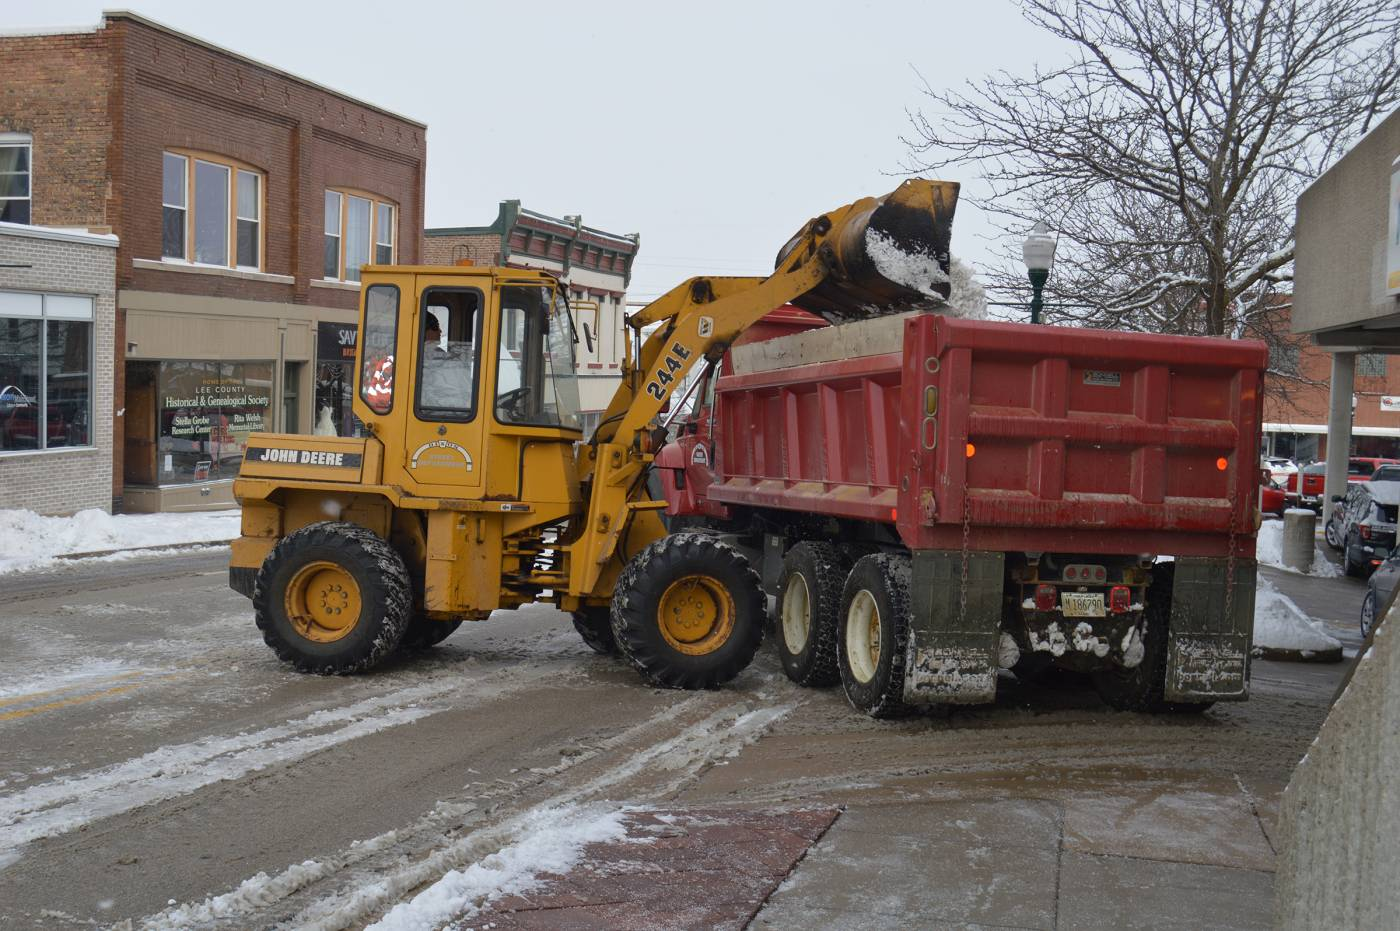 NEWS RELEASE: Even/Odd Parking Rules for Snow Removal